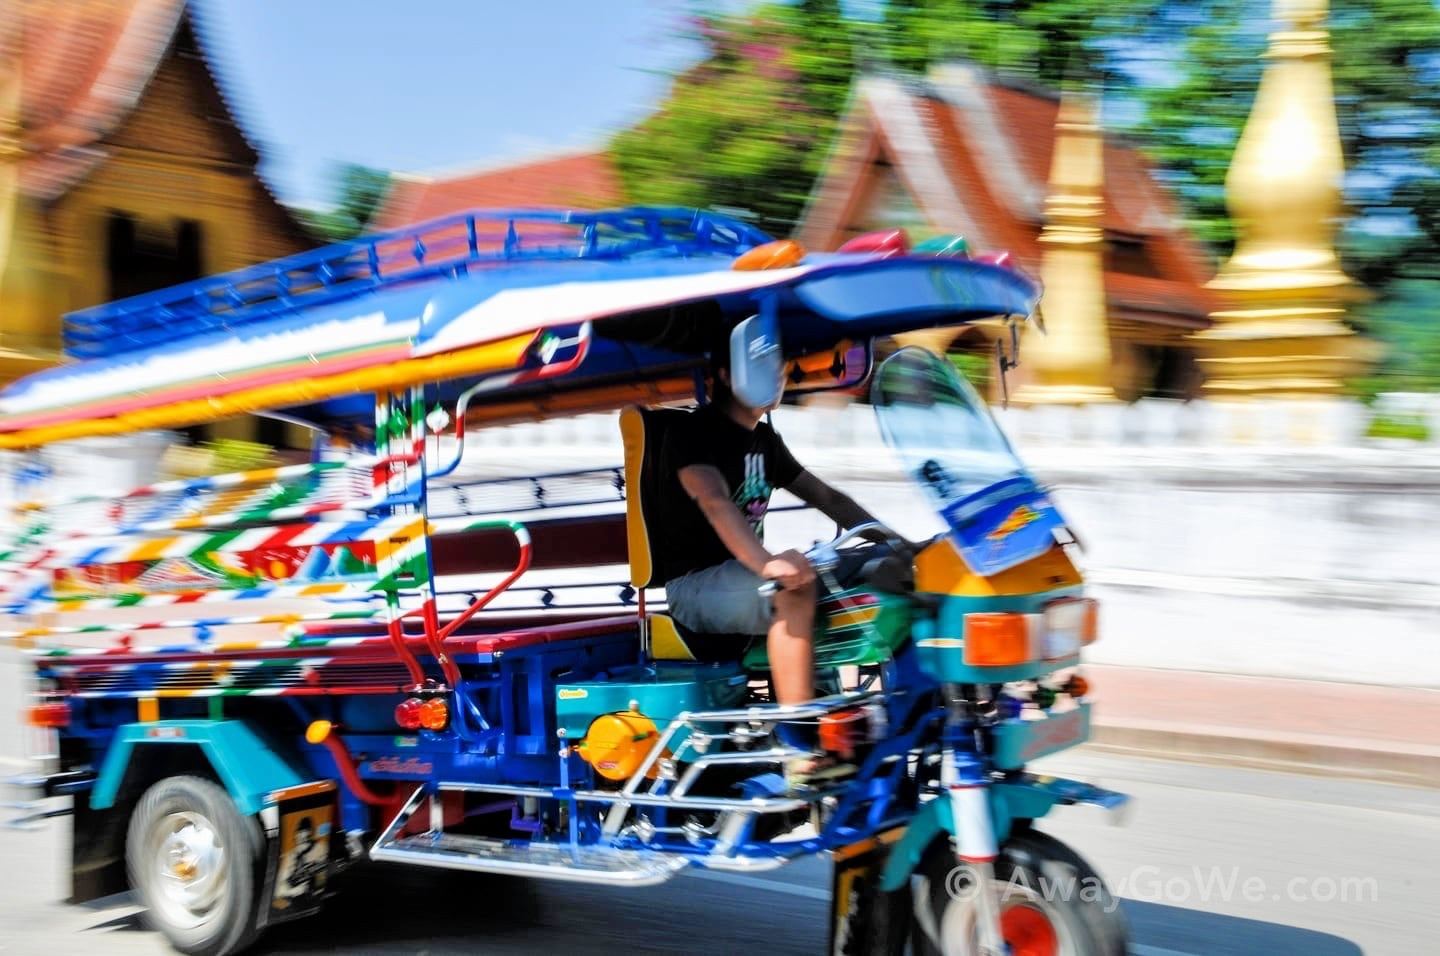 reasons to visit laos colorful tuk tuk